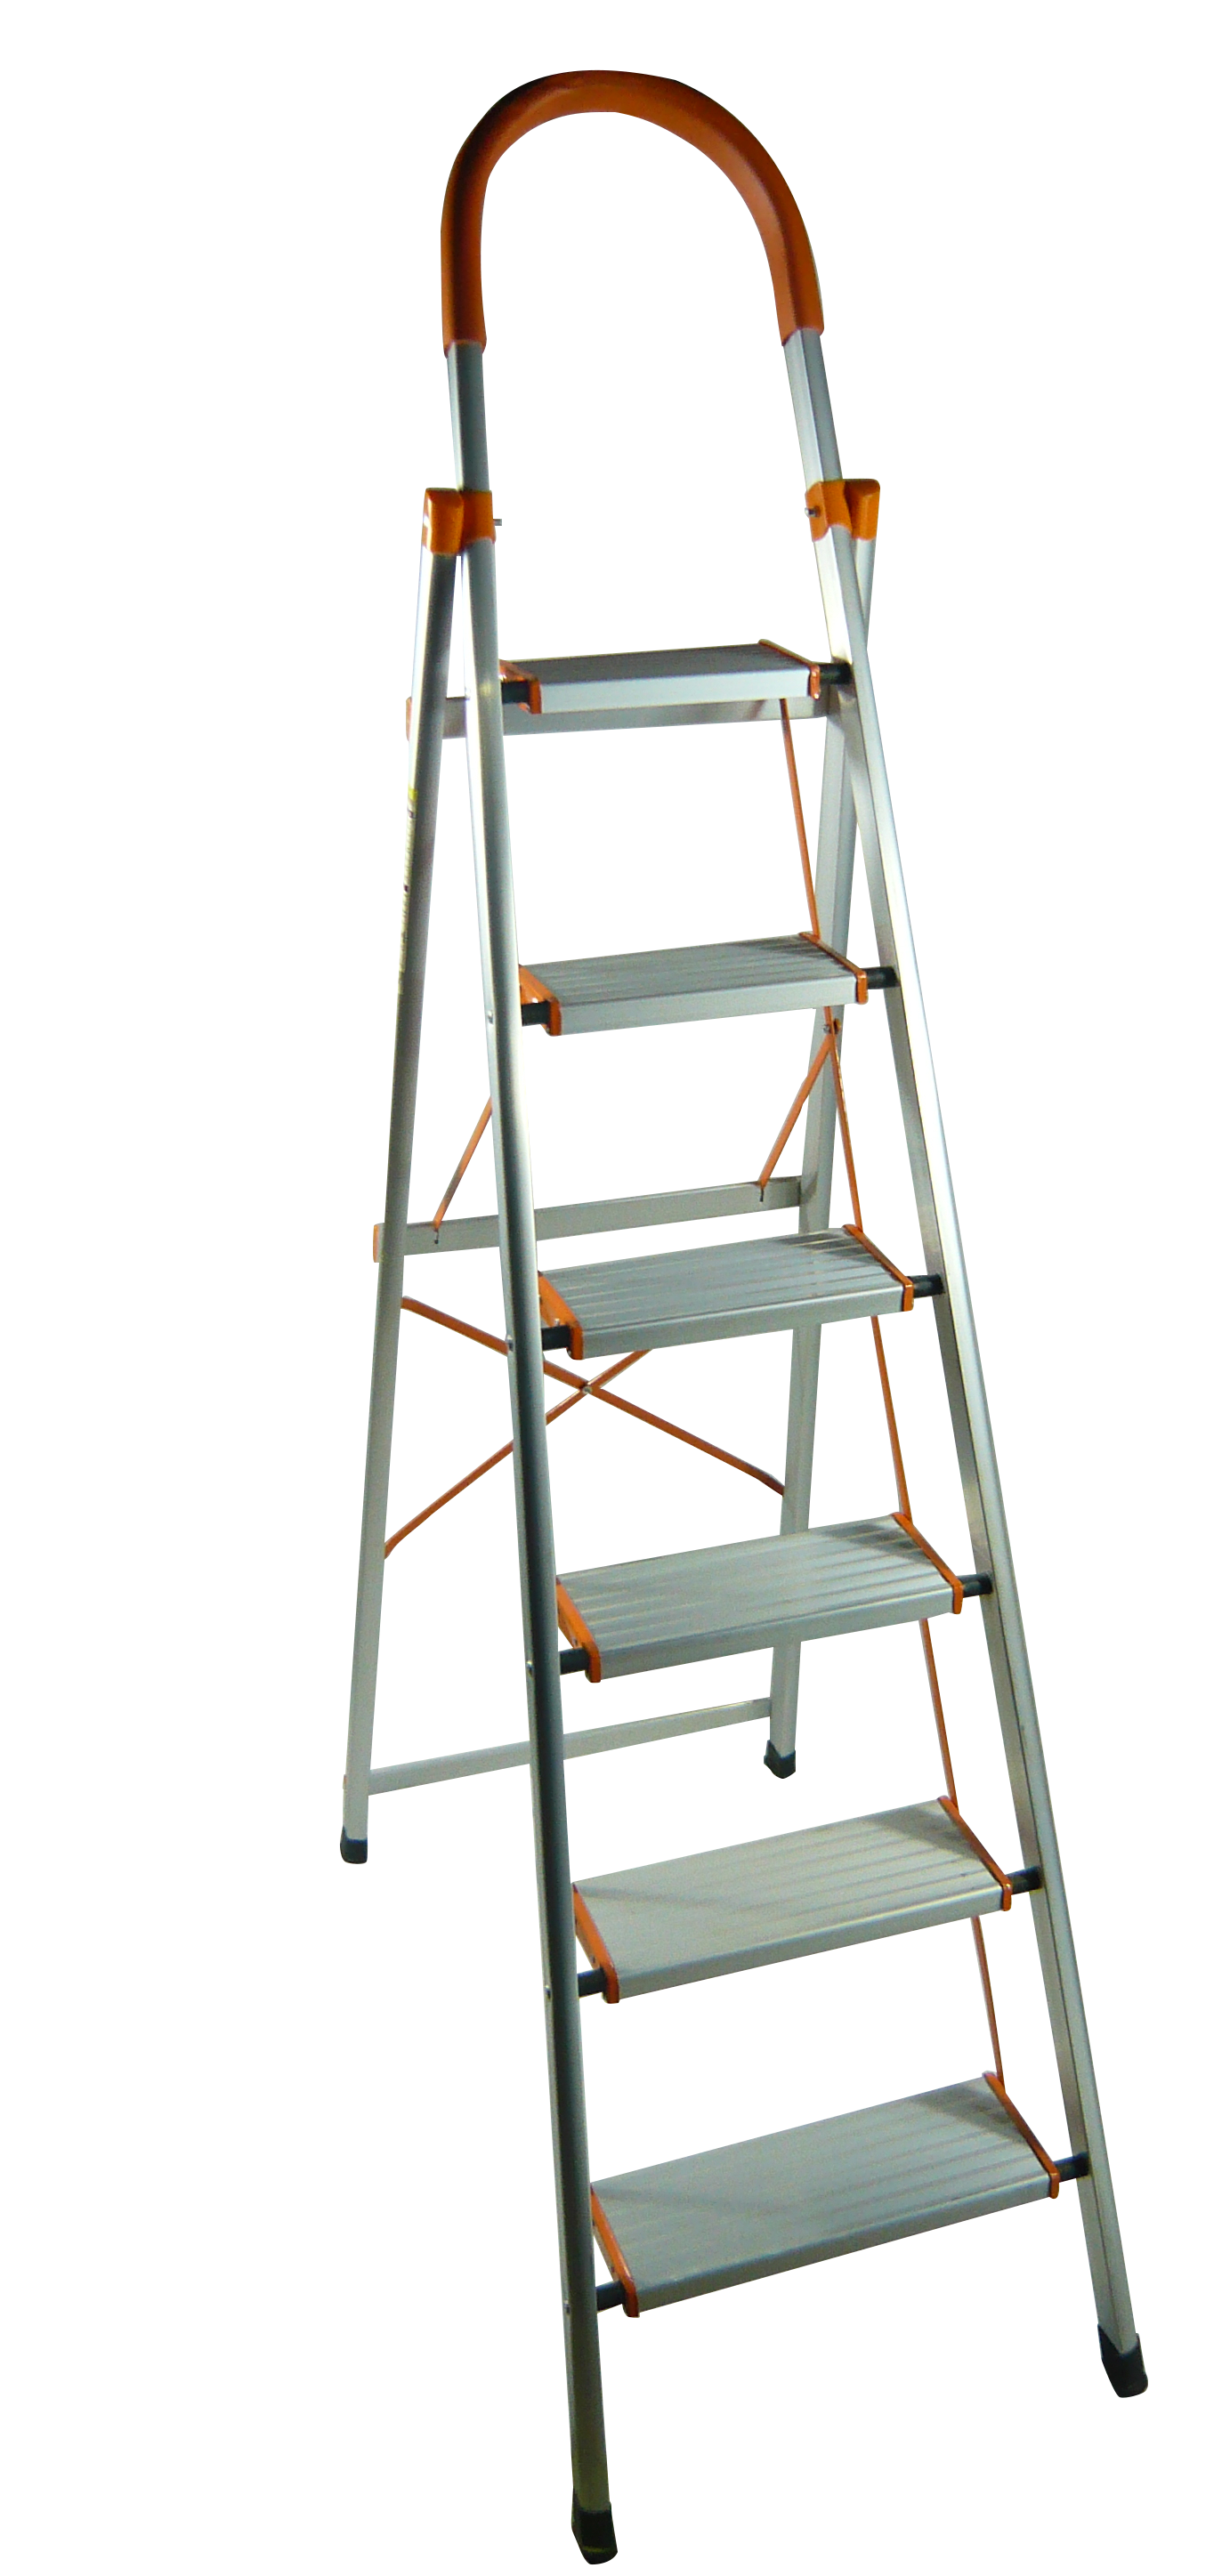 Ladder clipart staircase. Stairs clip art aluminum